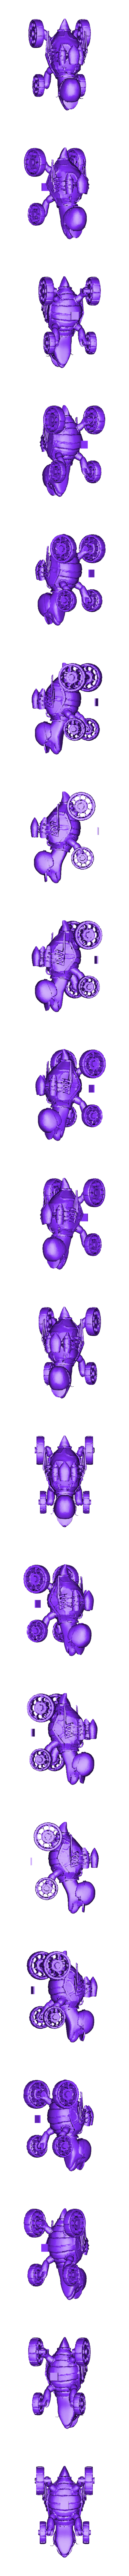 Turtle moveable.stl Download free STL file Racing turtle (MOVABLE WHEELS) • Object to 3D print, jonathanworkevans